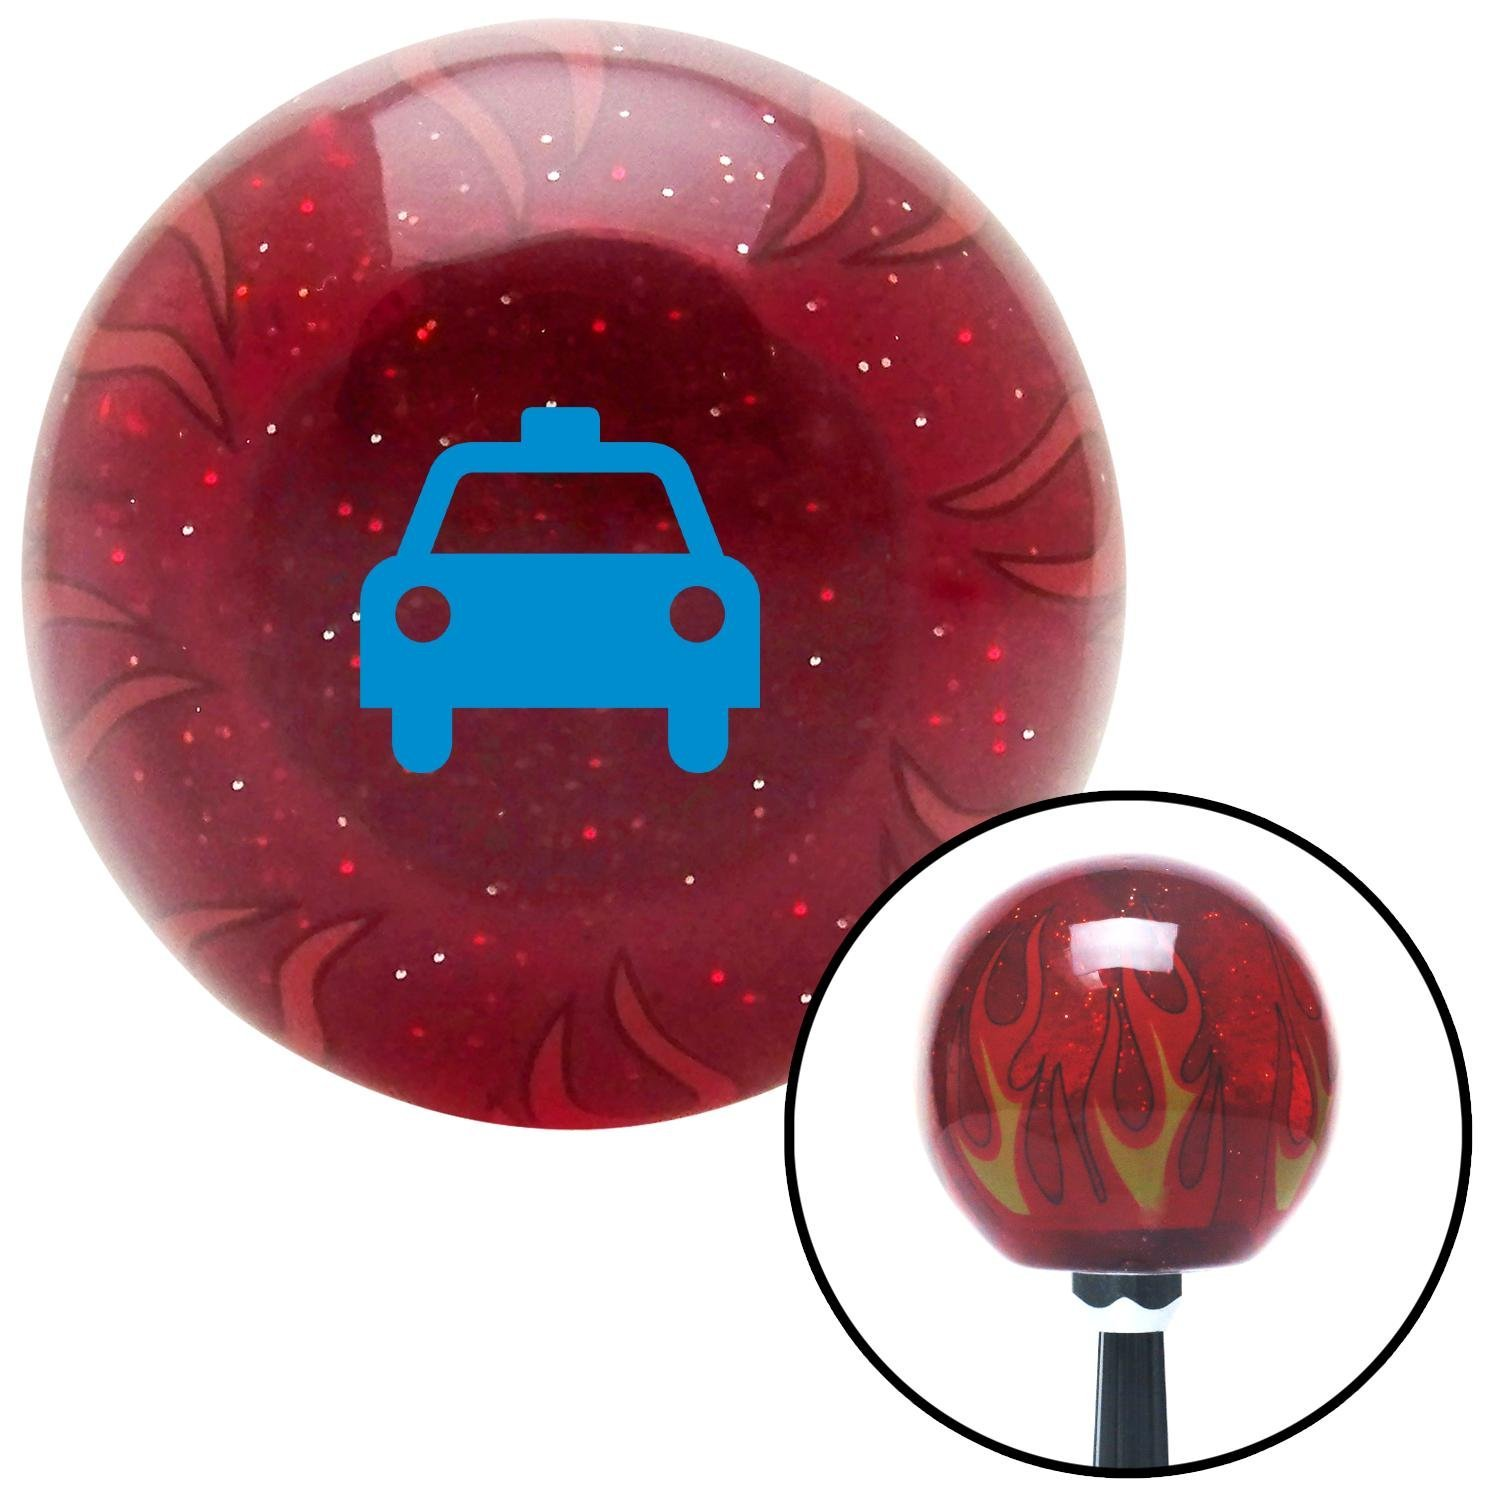 Blue Taxi American Shifter 240283 Red Flame Metal Flake Shift Knob with M16 x 1.5 Insert